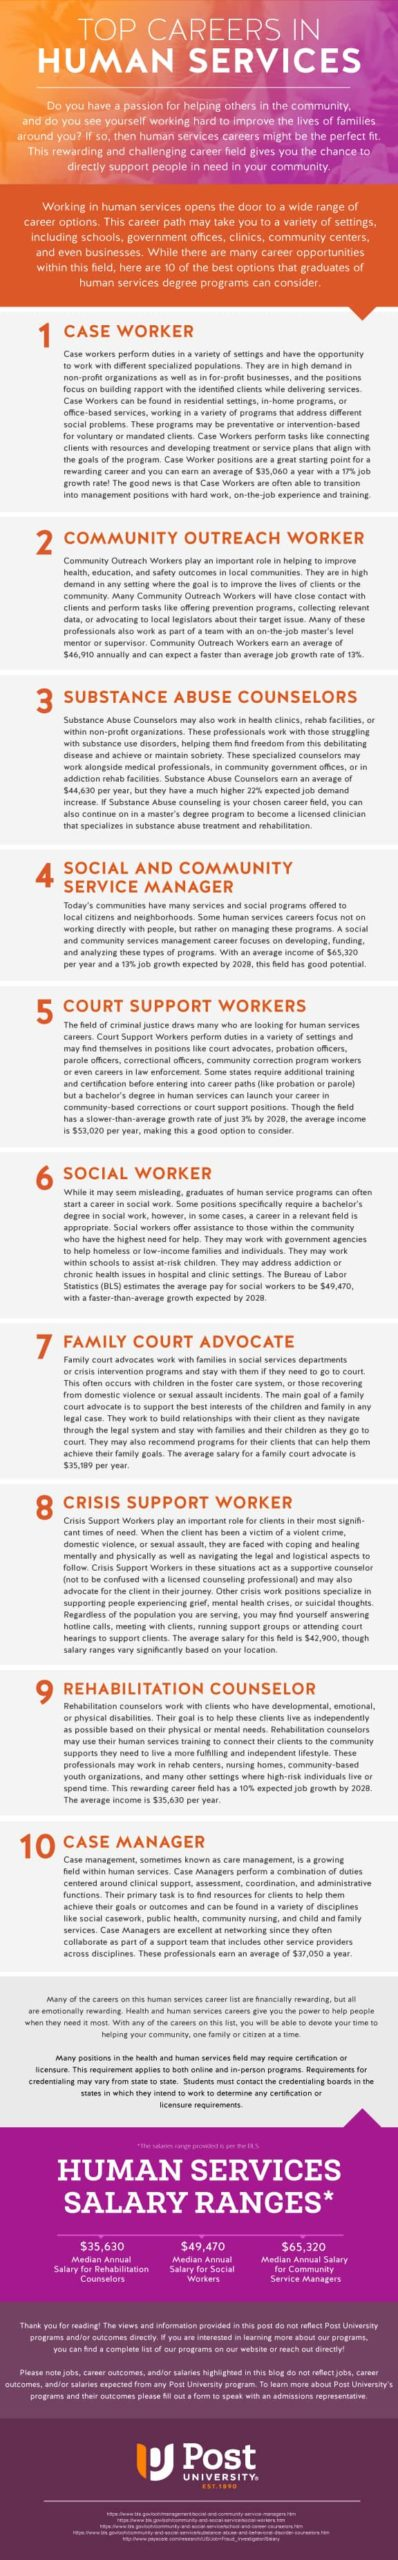 infographic listing human services careers